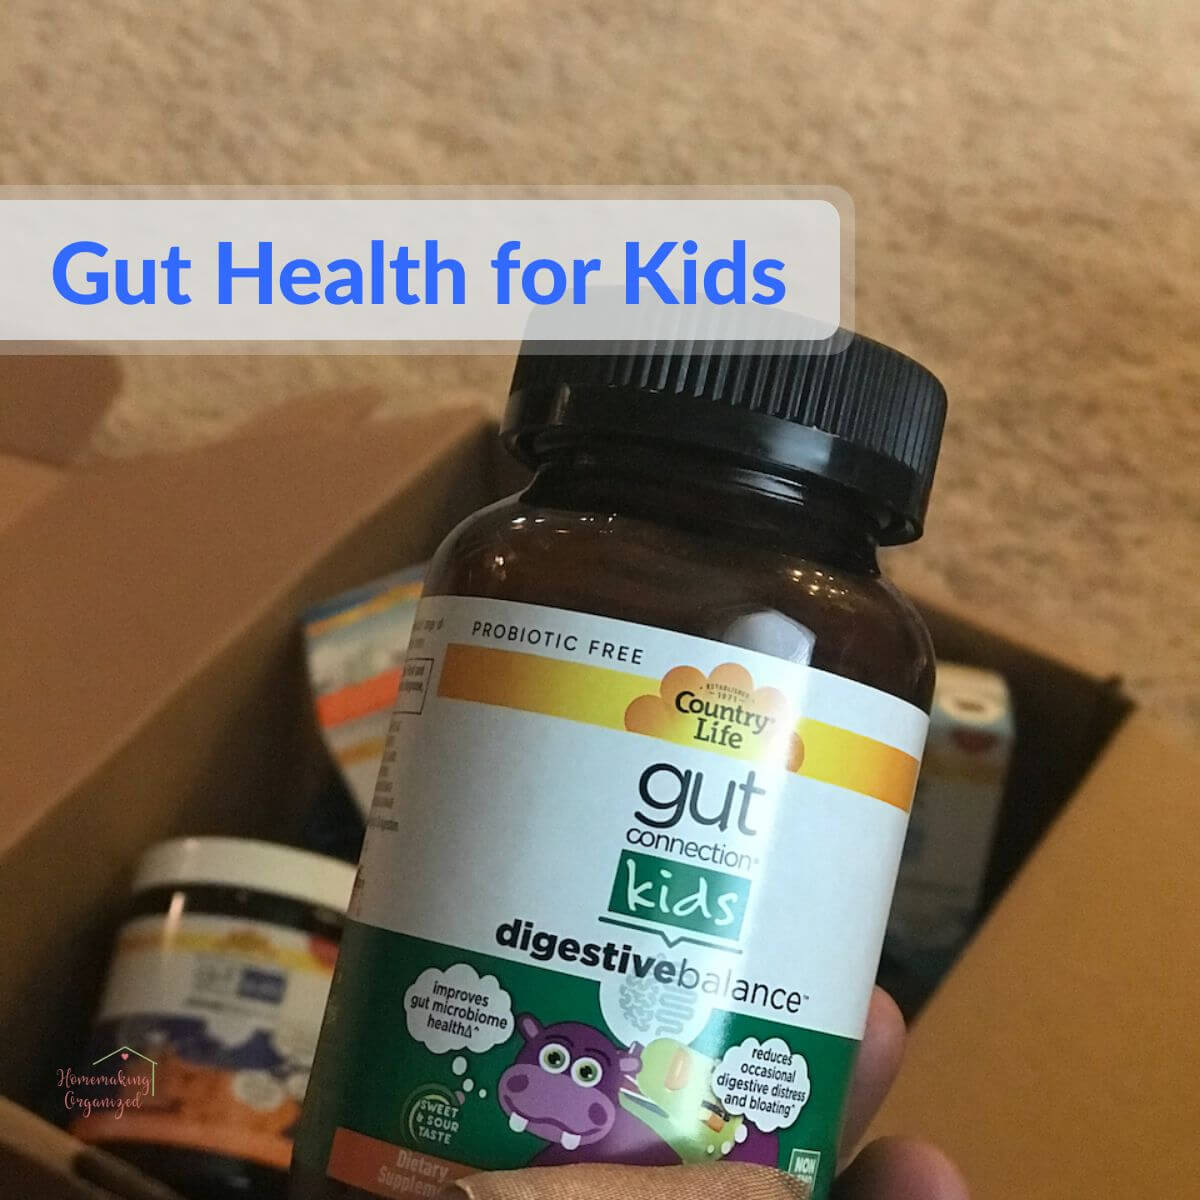 Gut Connection Kids Prebiotic Supplements by Country Life